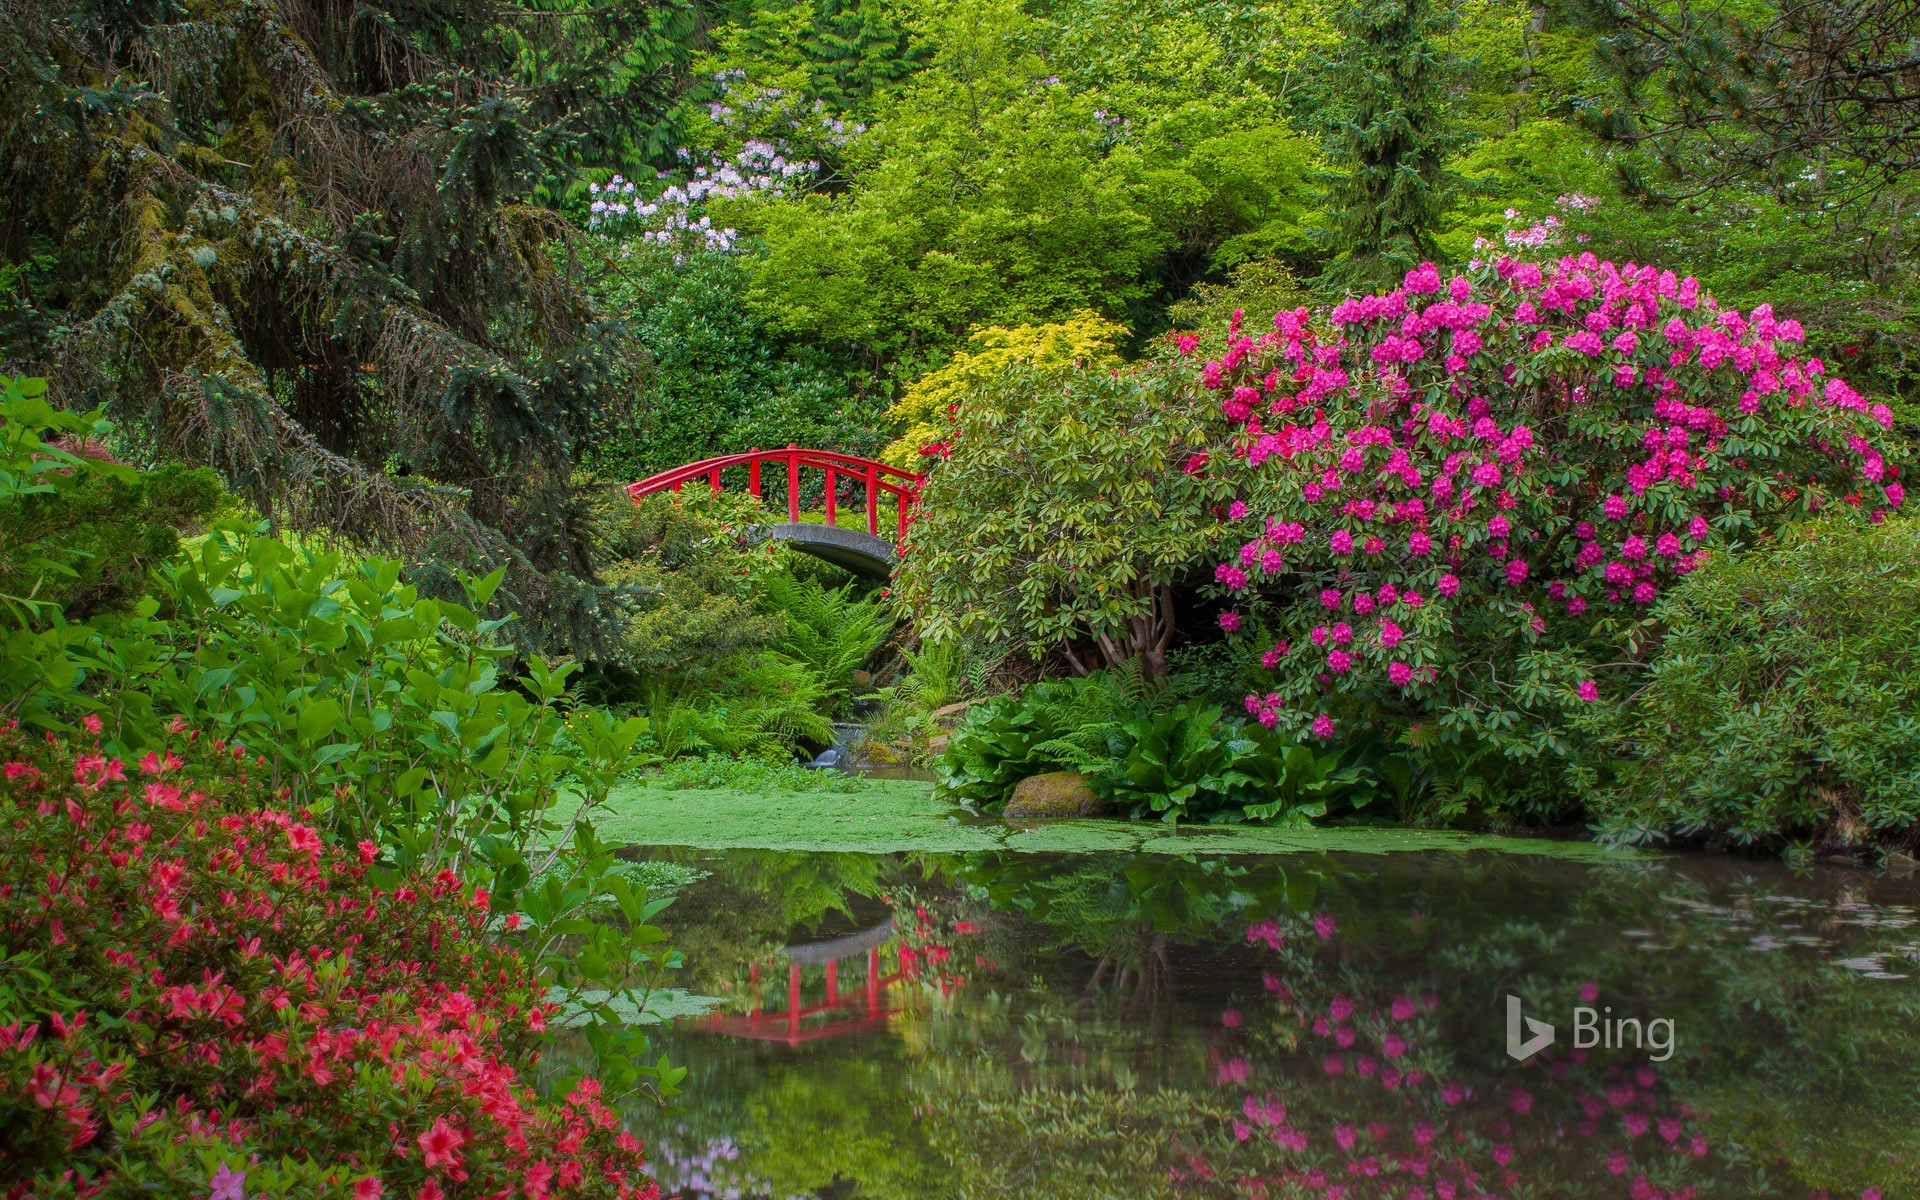 Rhododendrons and azaleas blooming around Moon Bridge, Kubota Garden, Seattle, Washington